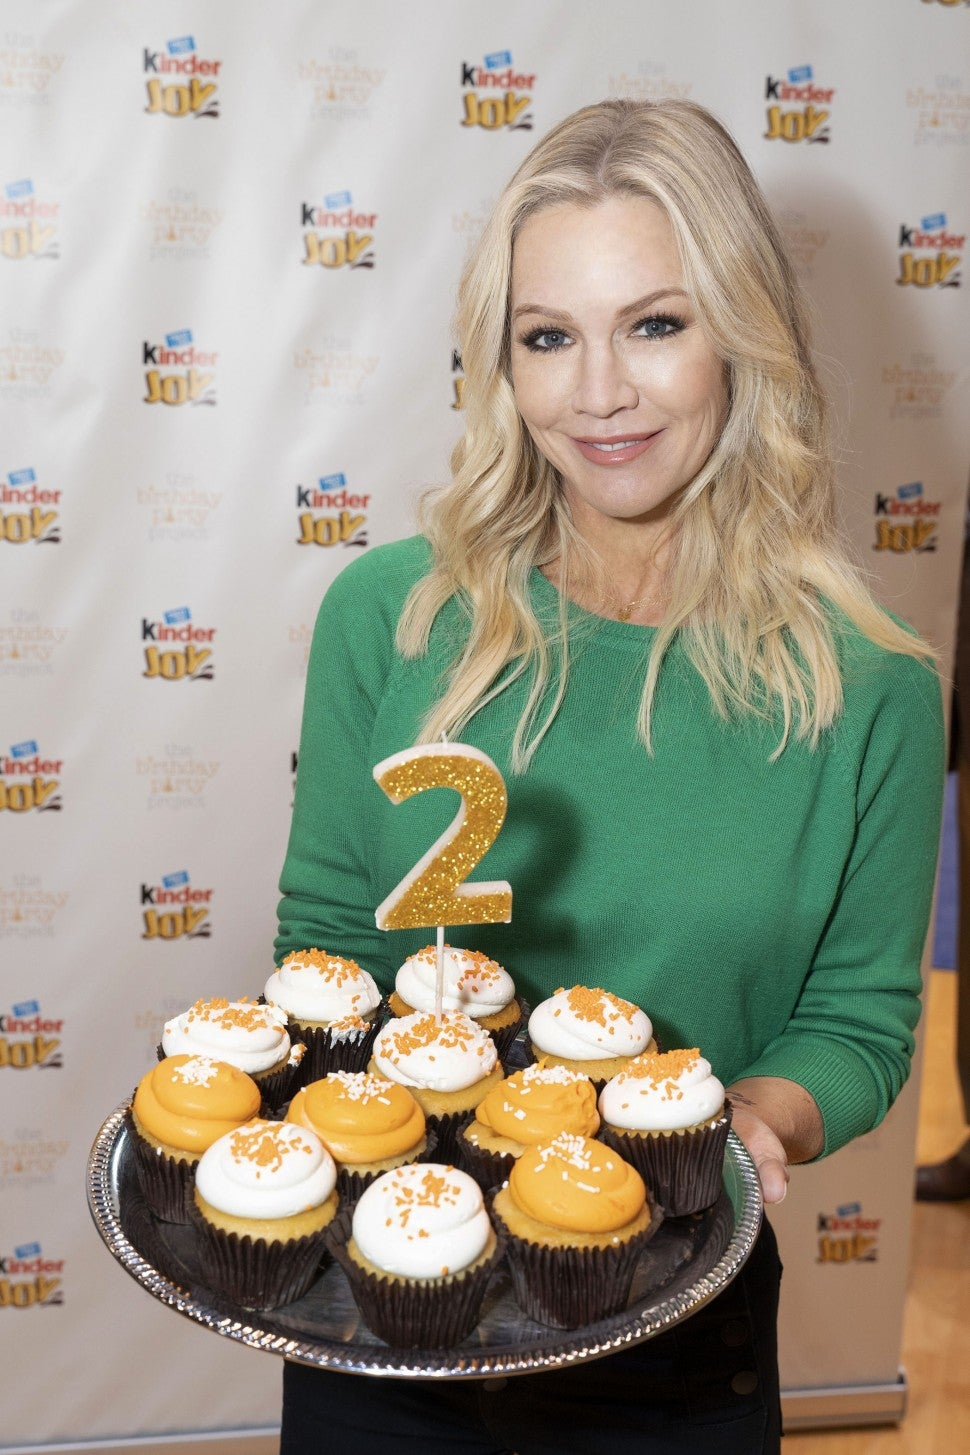 Jennie Garth with kinder joy